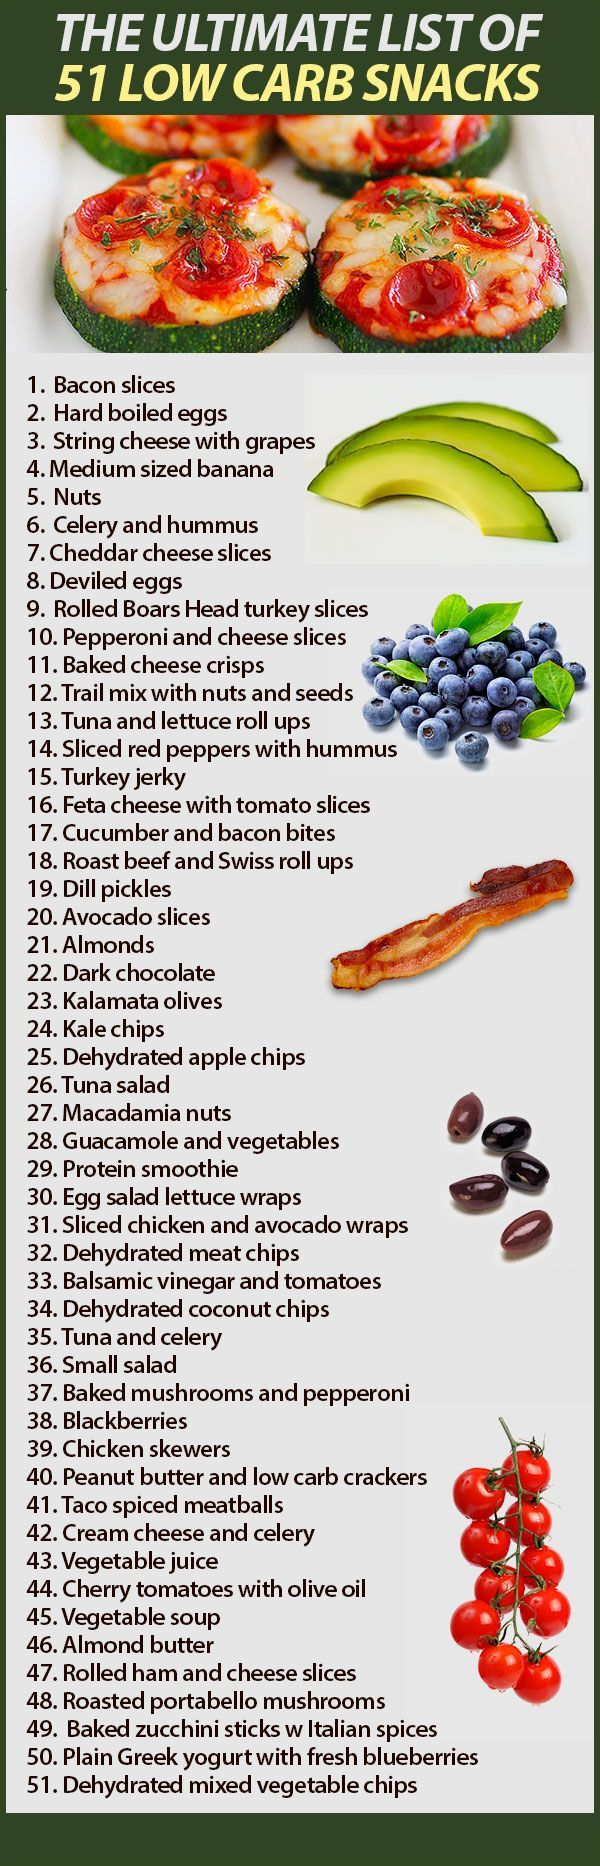 The ultimate list of 51 low carb snacks for those that have diabetes, paleo dieters and more.